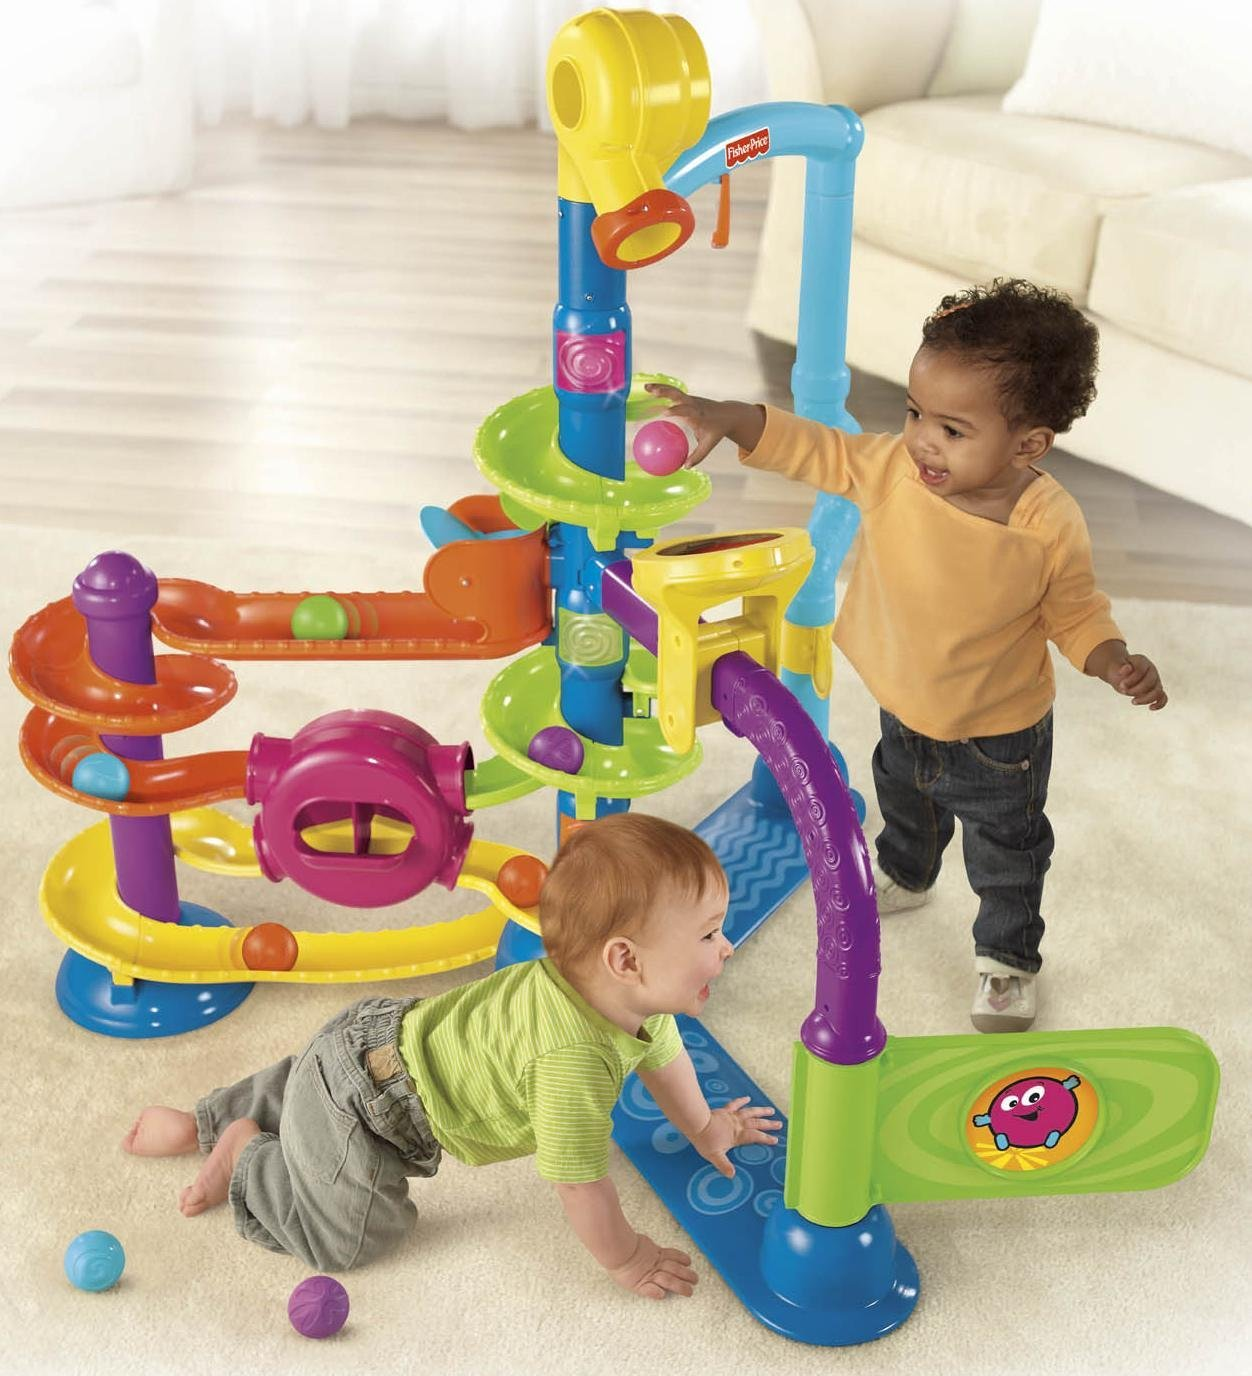 Popular Toys For Boys 8 And Under : Best gifts ideas for one year old boys first birthday